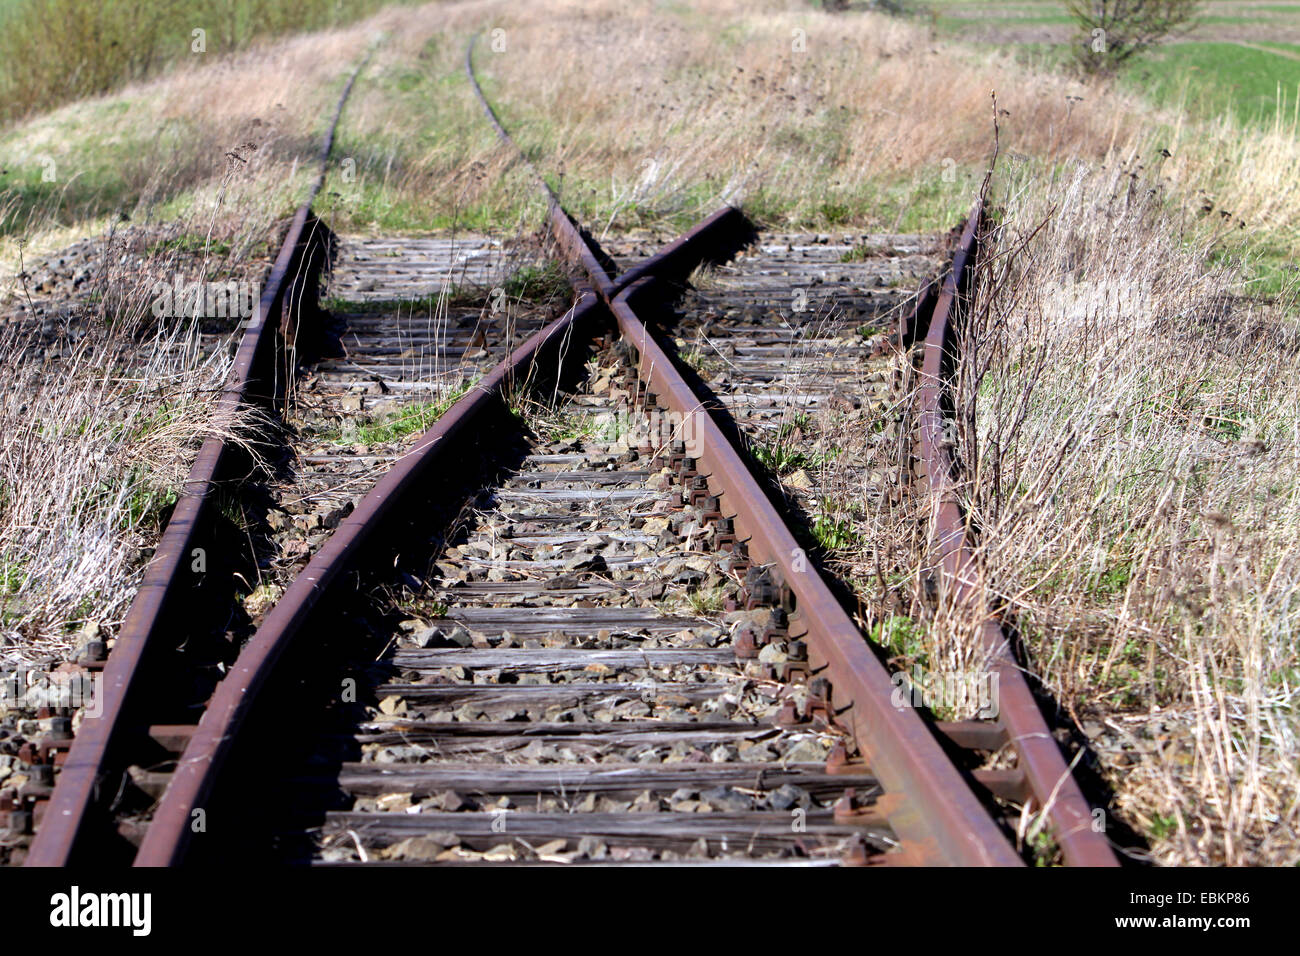 turnout on a disused railroad track, Germany, Mecklenburg-Western Pomerania, Pruchten - Stock Image